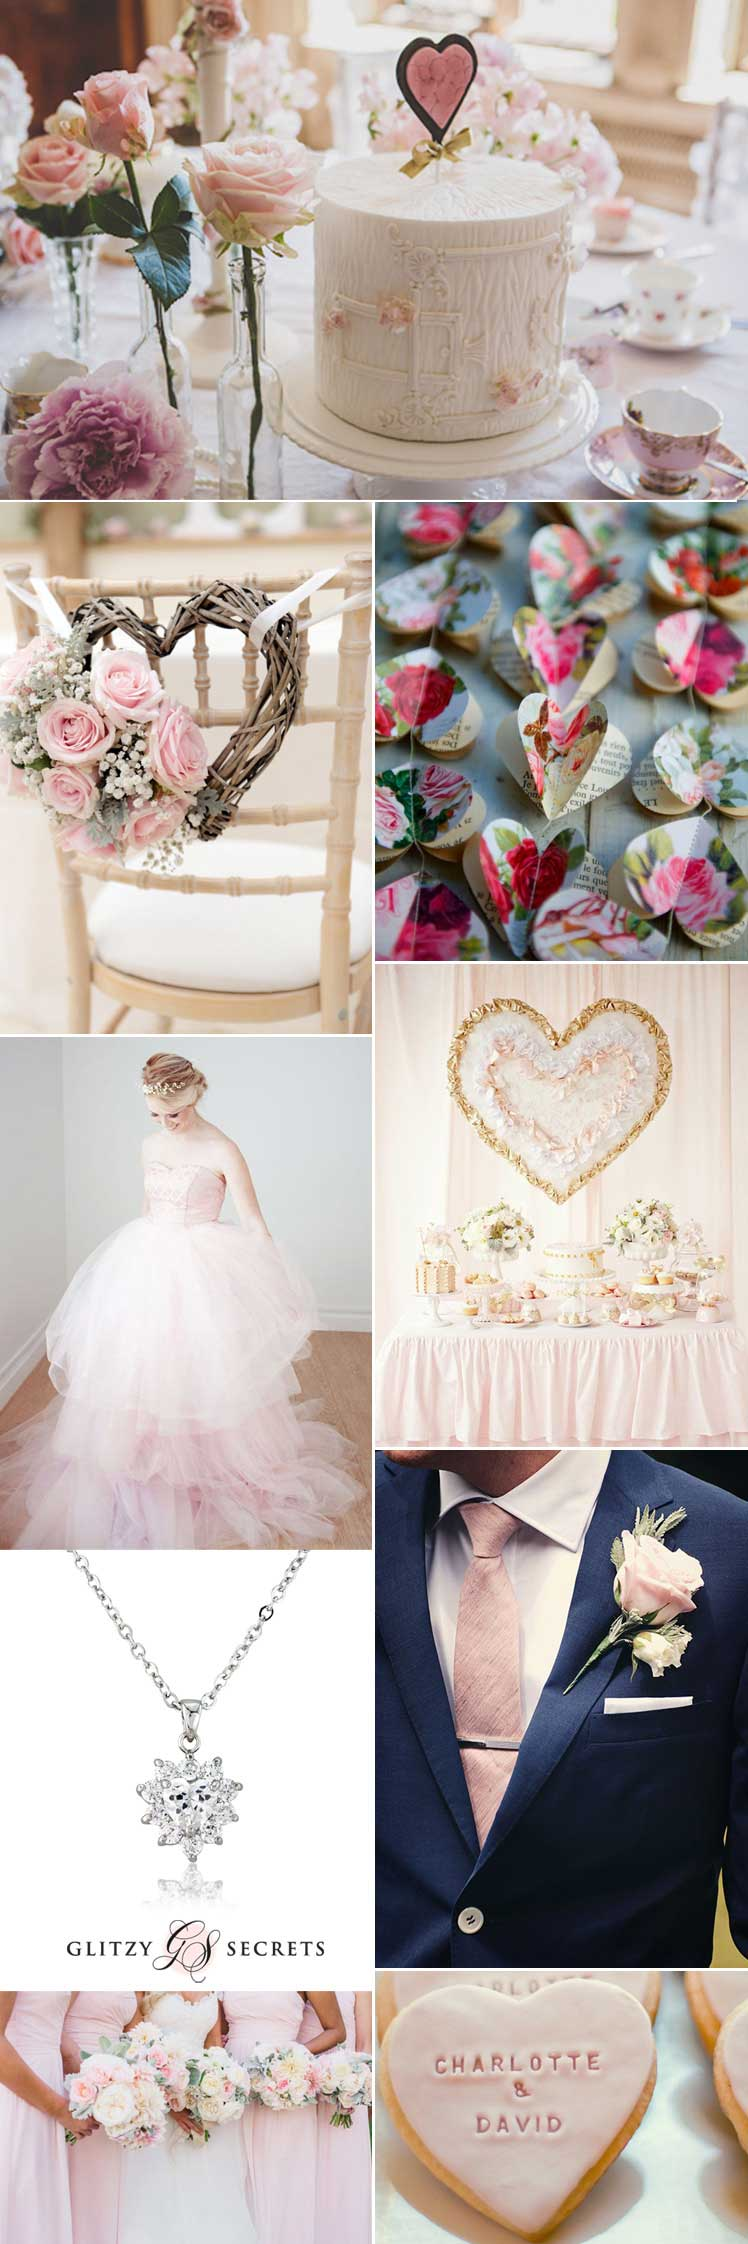 Heart themed Valentine wedding inspiration